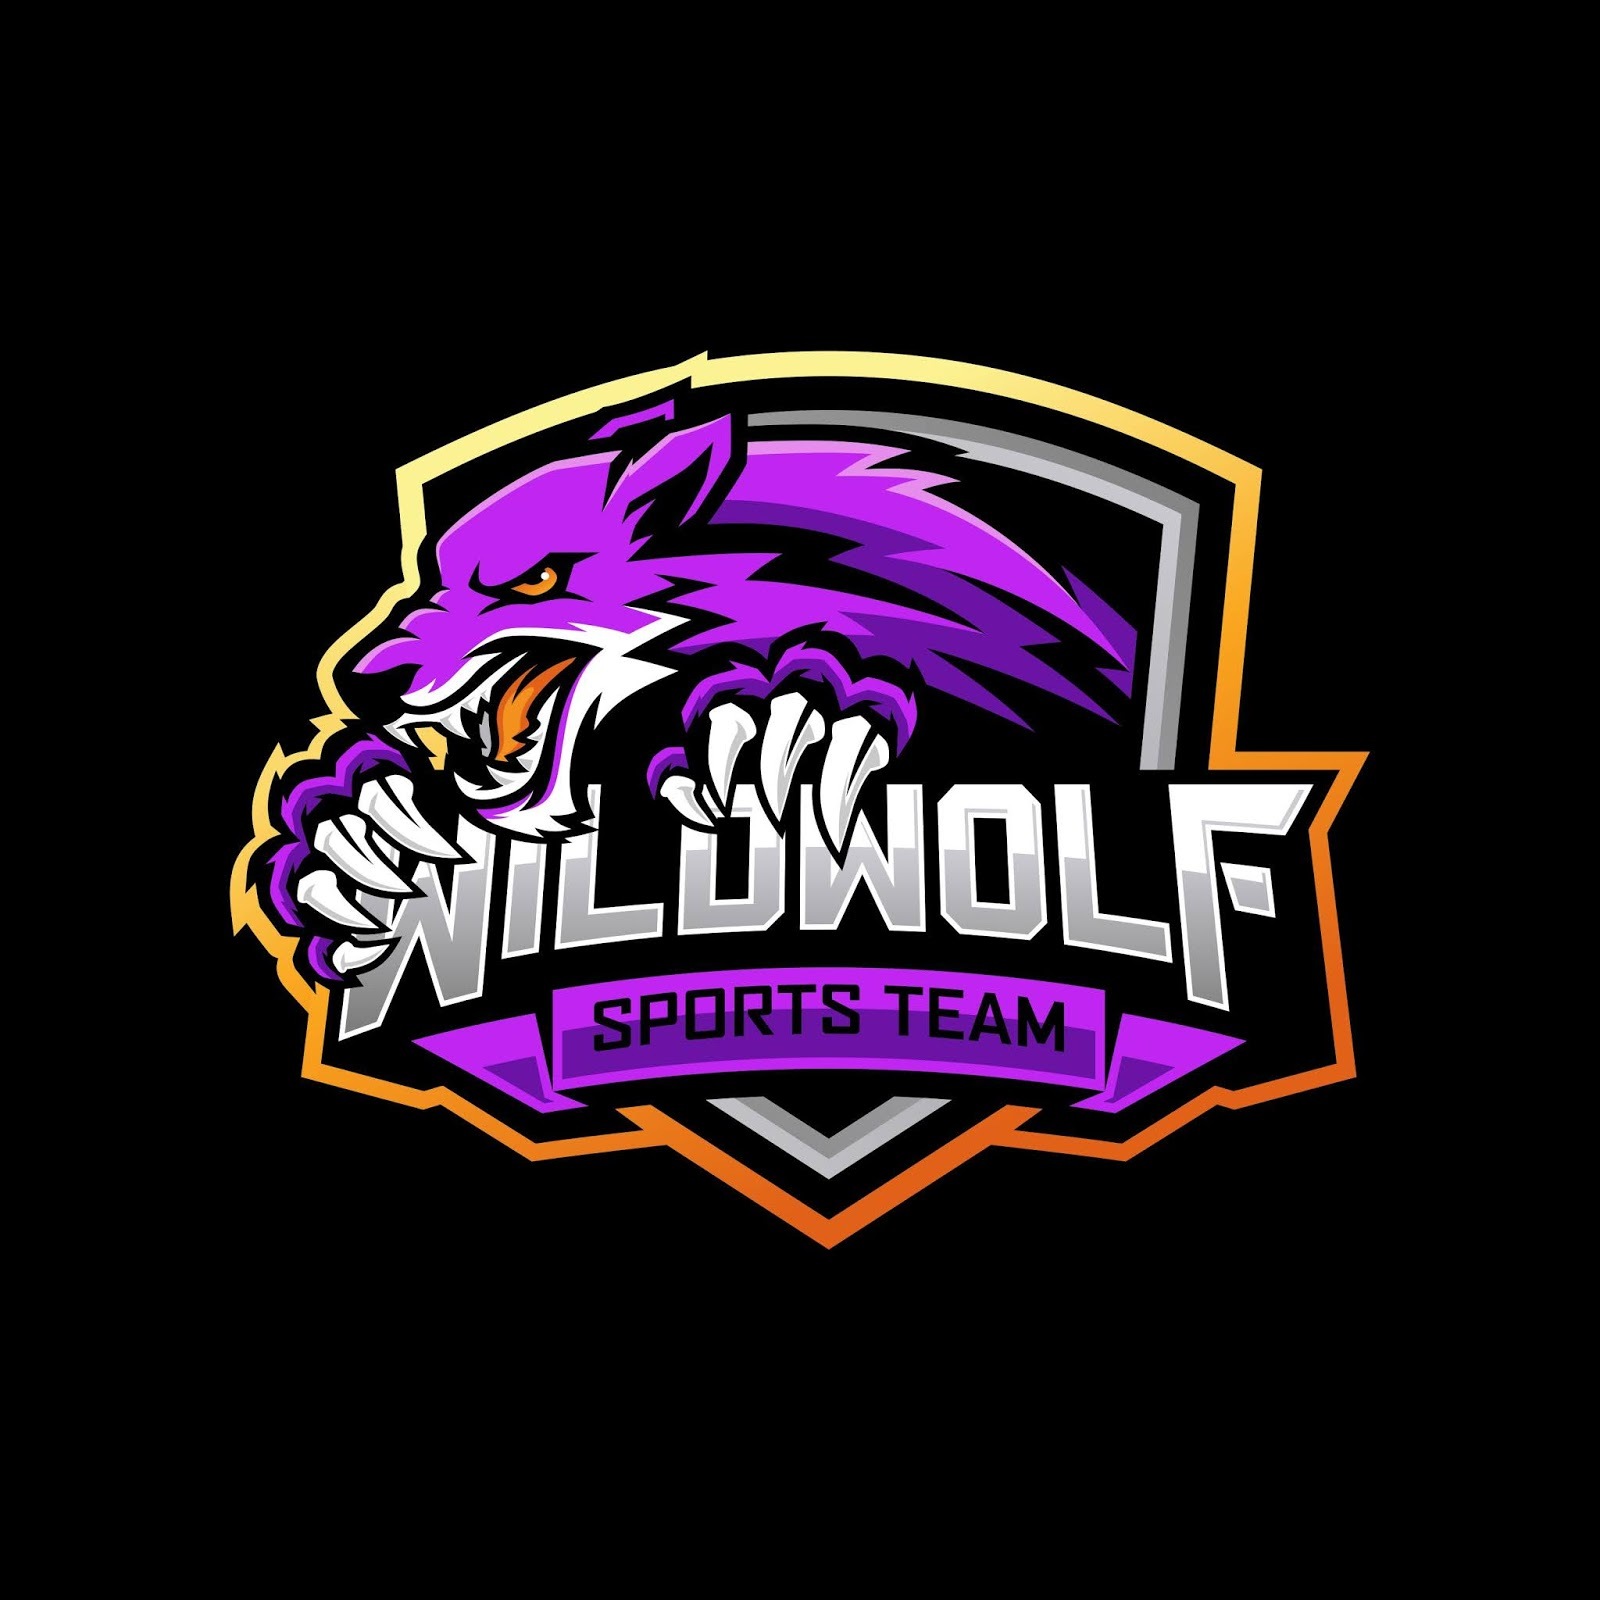 Wolf E Sports Free Download Vector CDR, AI, EPS and PNG Formats